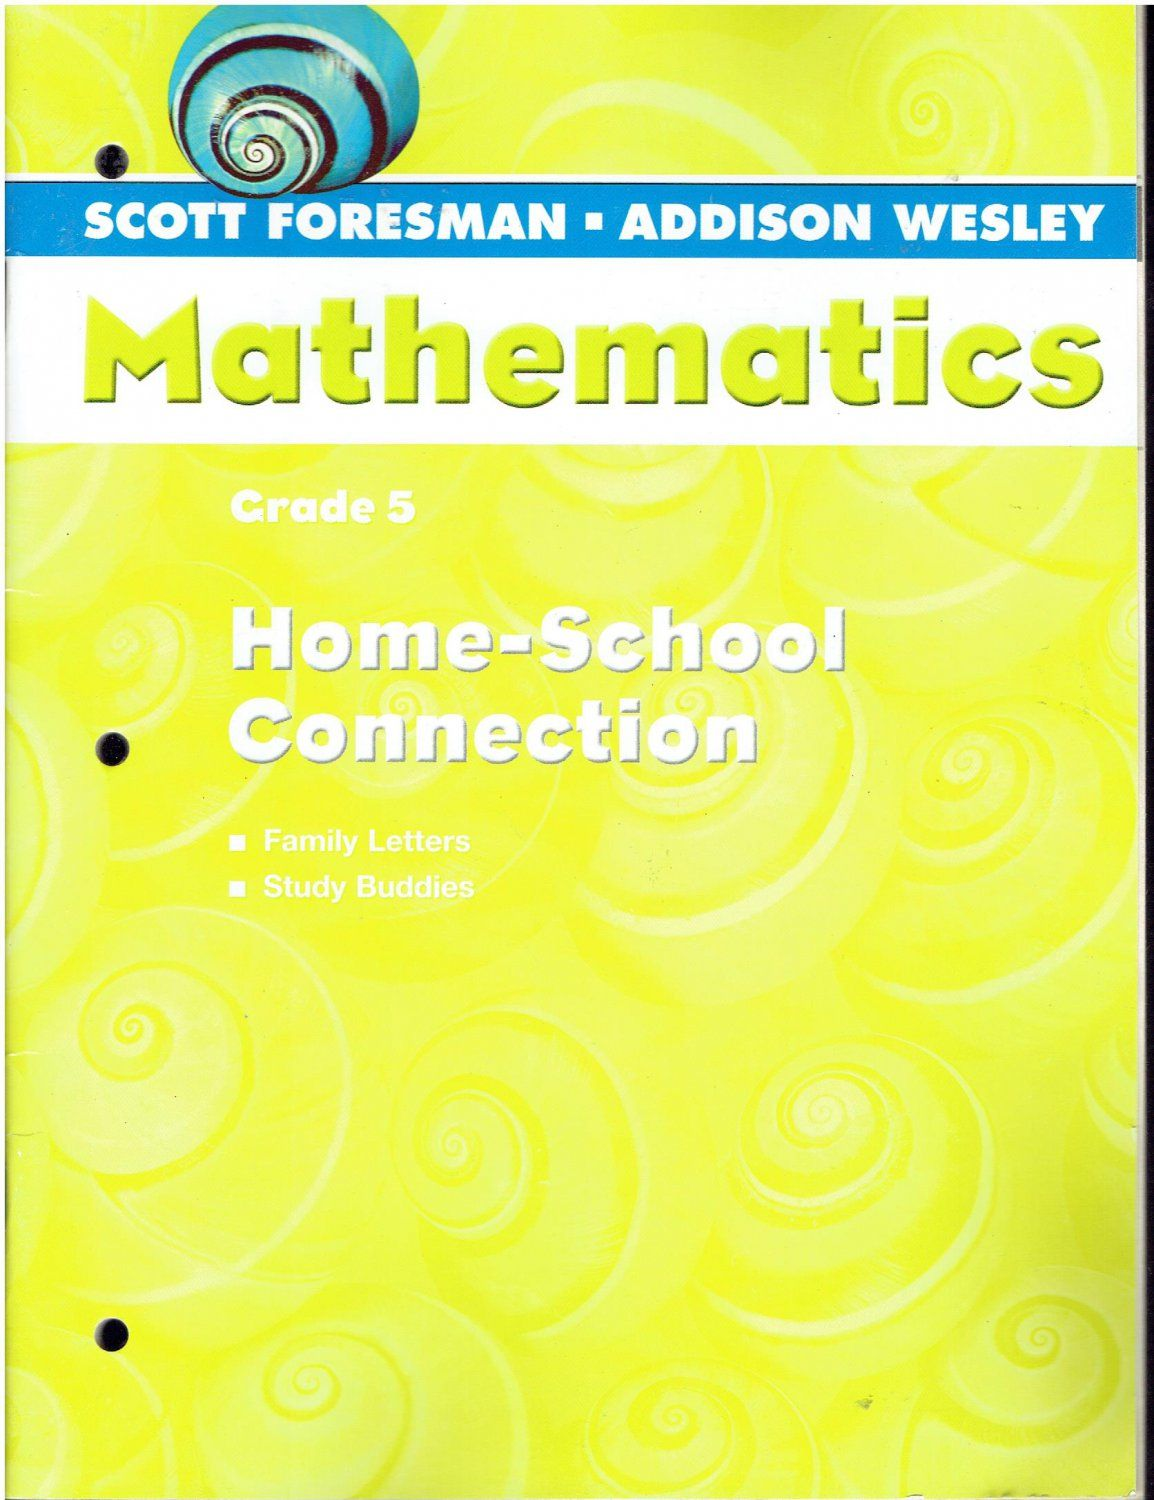 Workbooks scott foresman social studies workbook answers 5th grade : Scott Foresman-Addison Wesley Mathematics Grade 5 Home-School ...